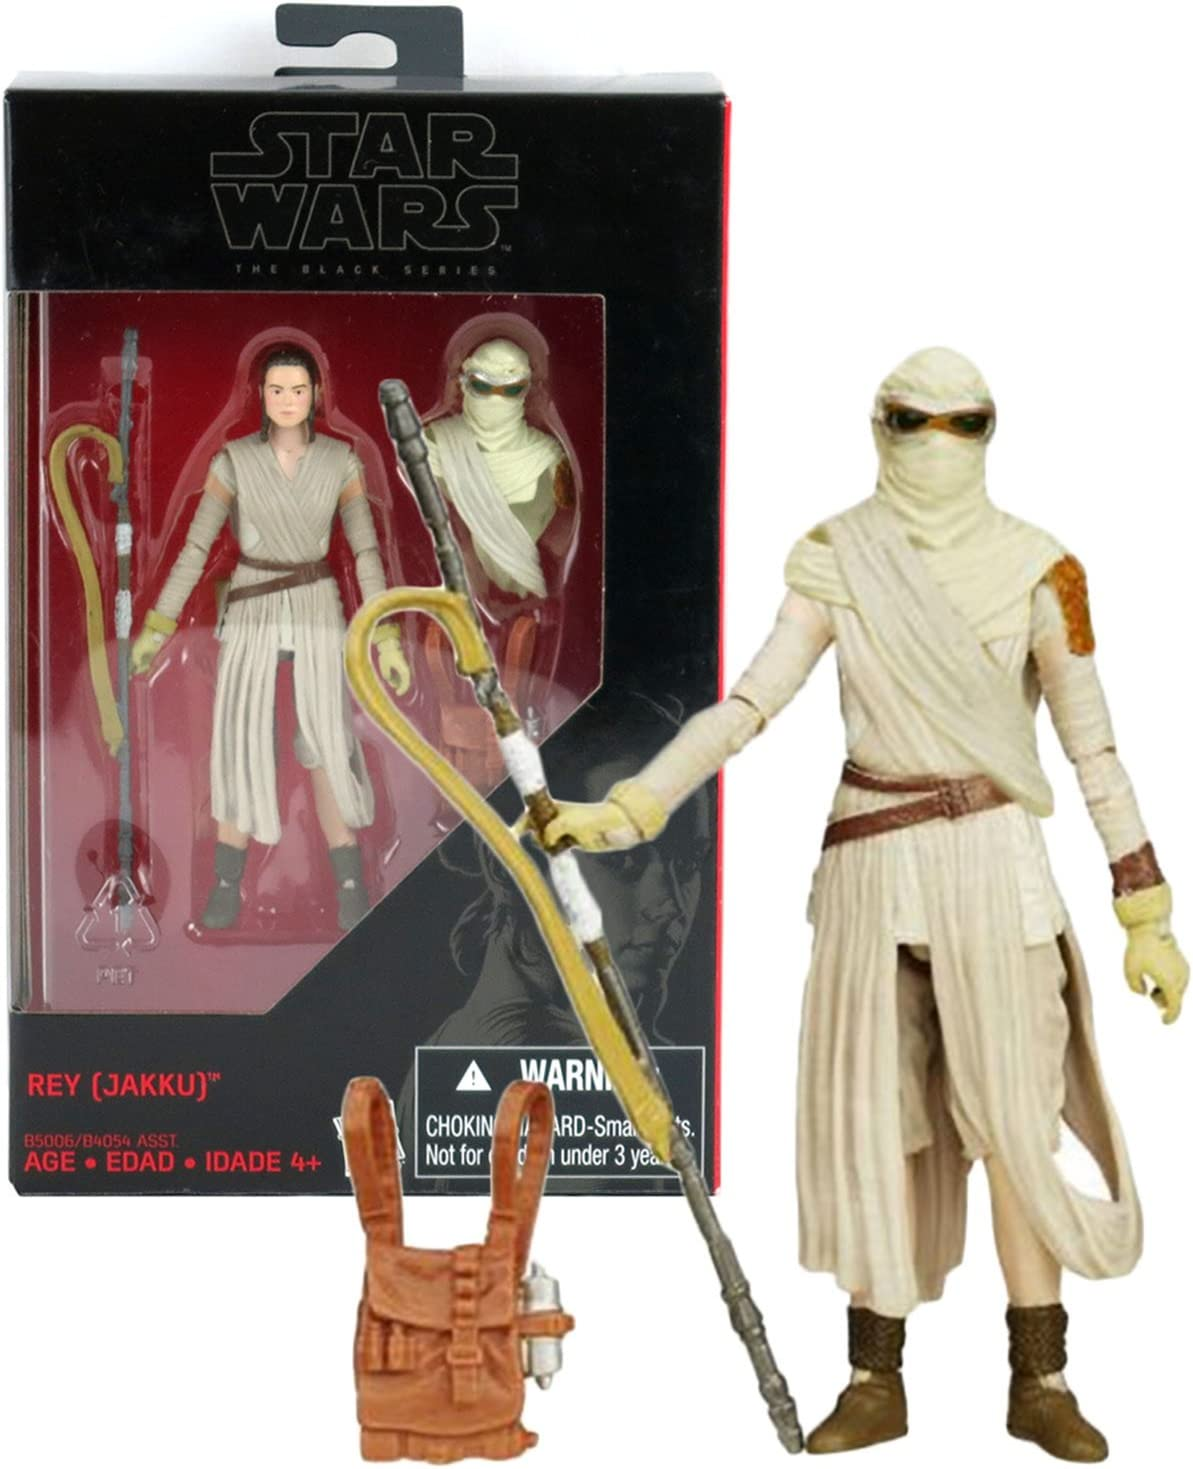 Star Wars The Black Series Rey Jakku Figure Walmart Exclusive 3.75/""